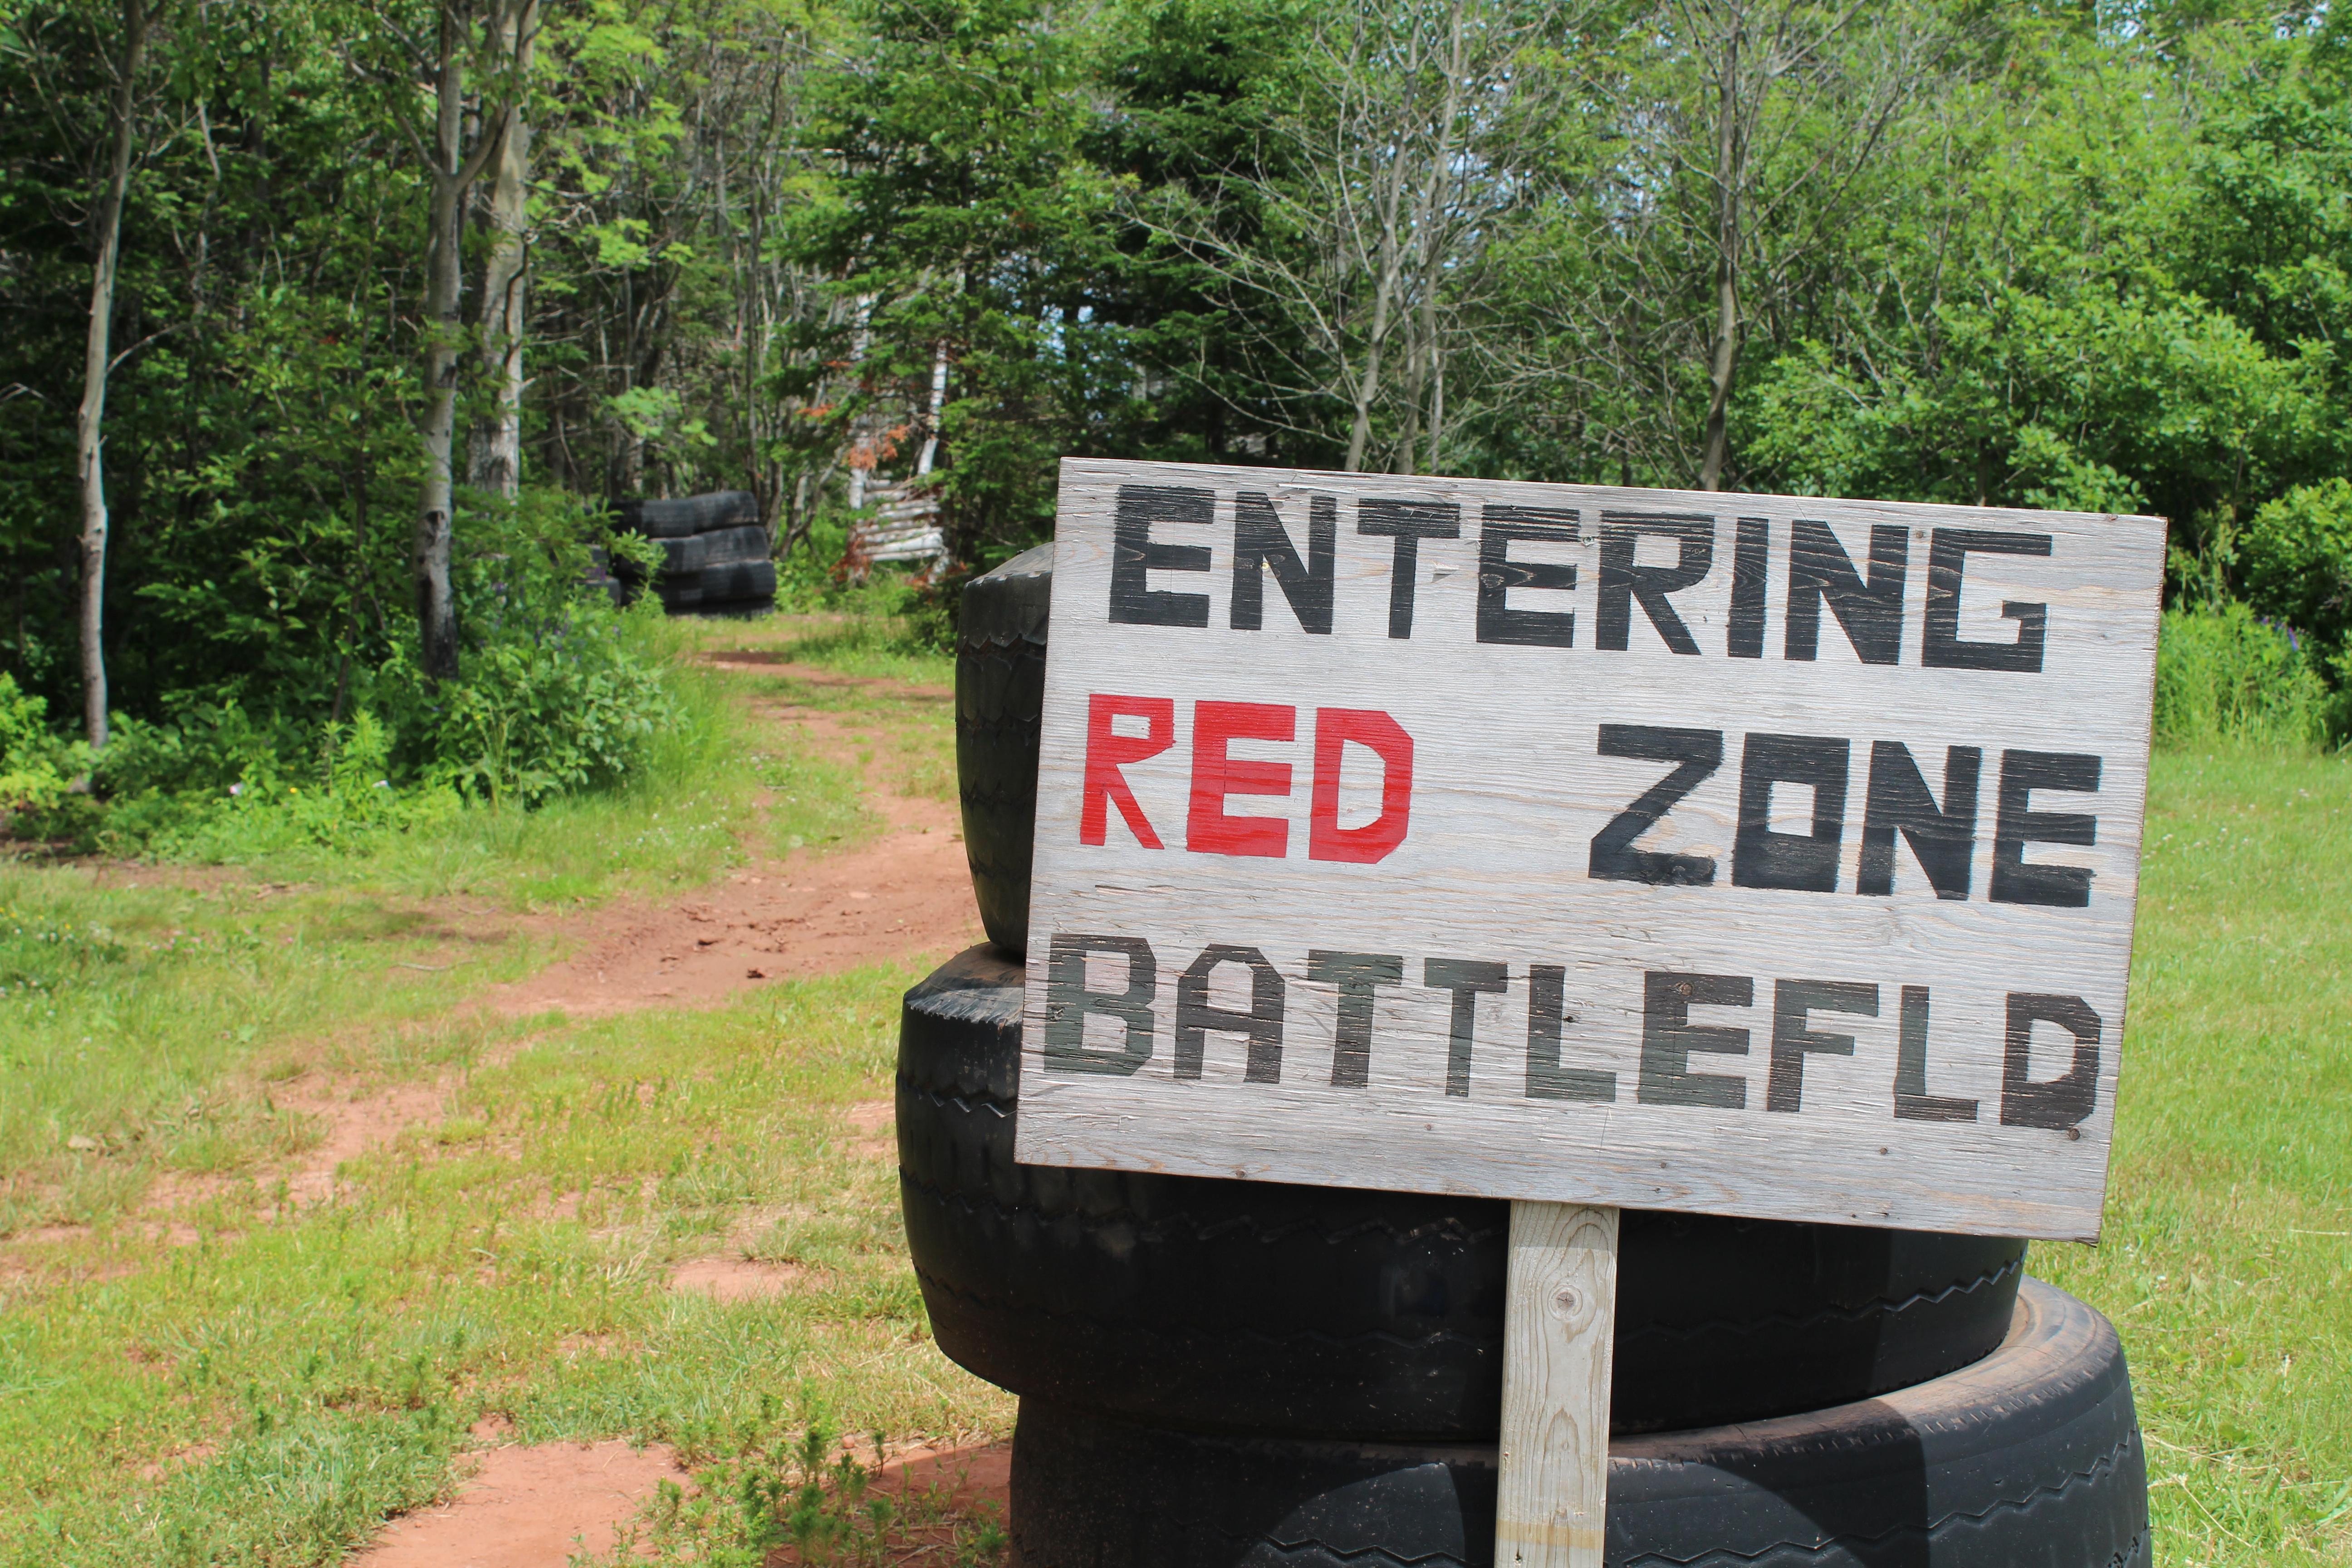 Red Zone Laser Tag at Darnley Greens